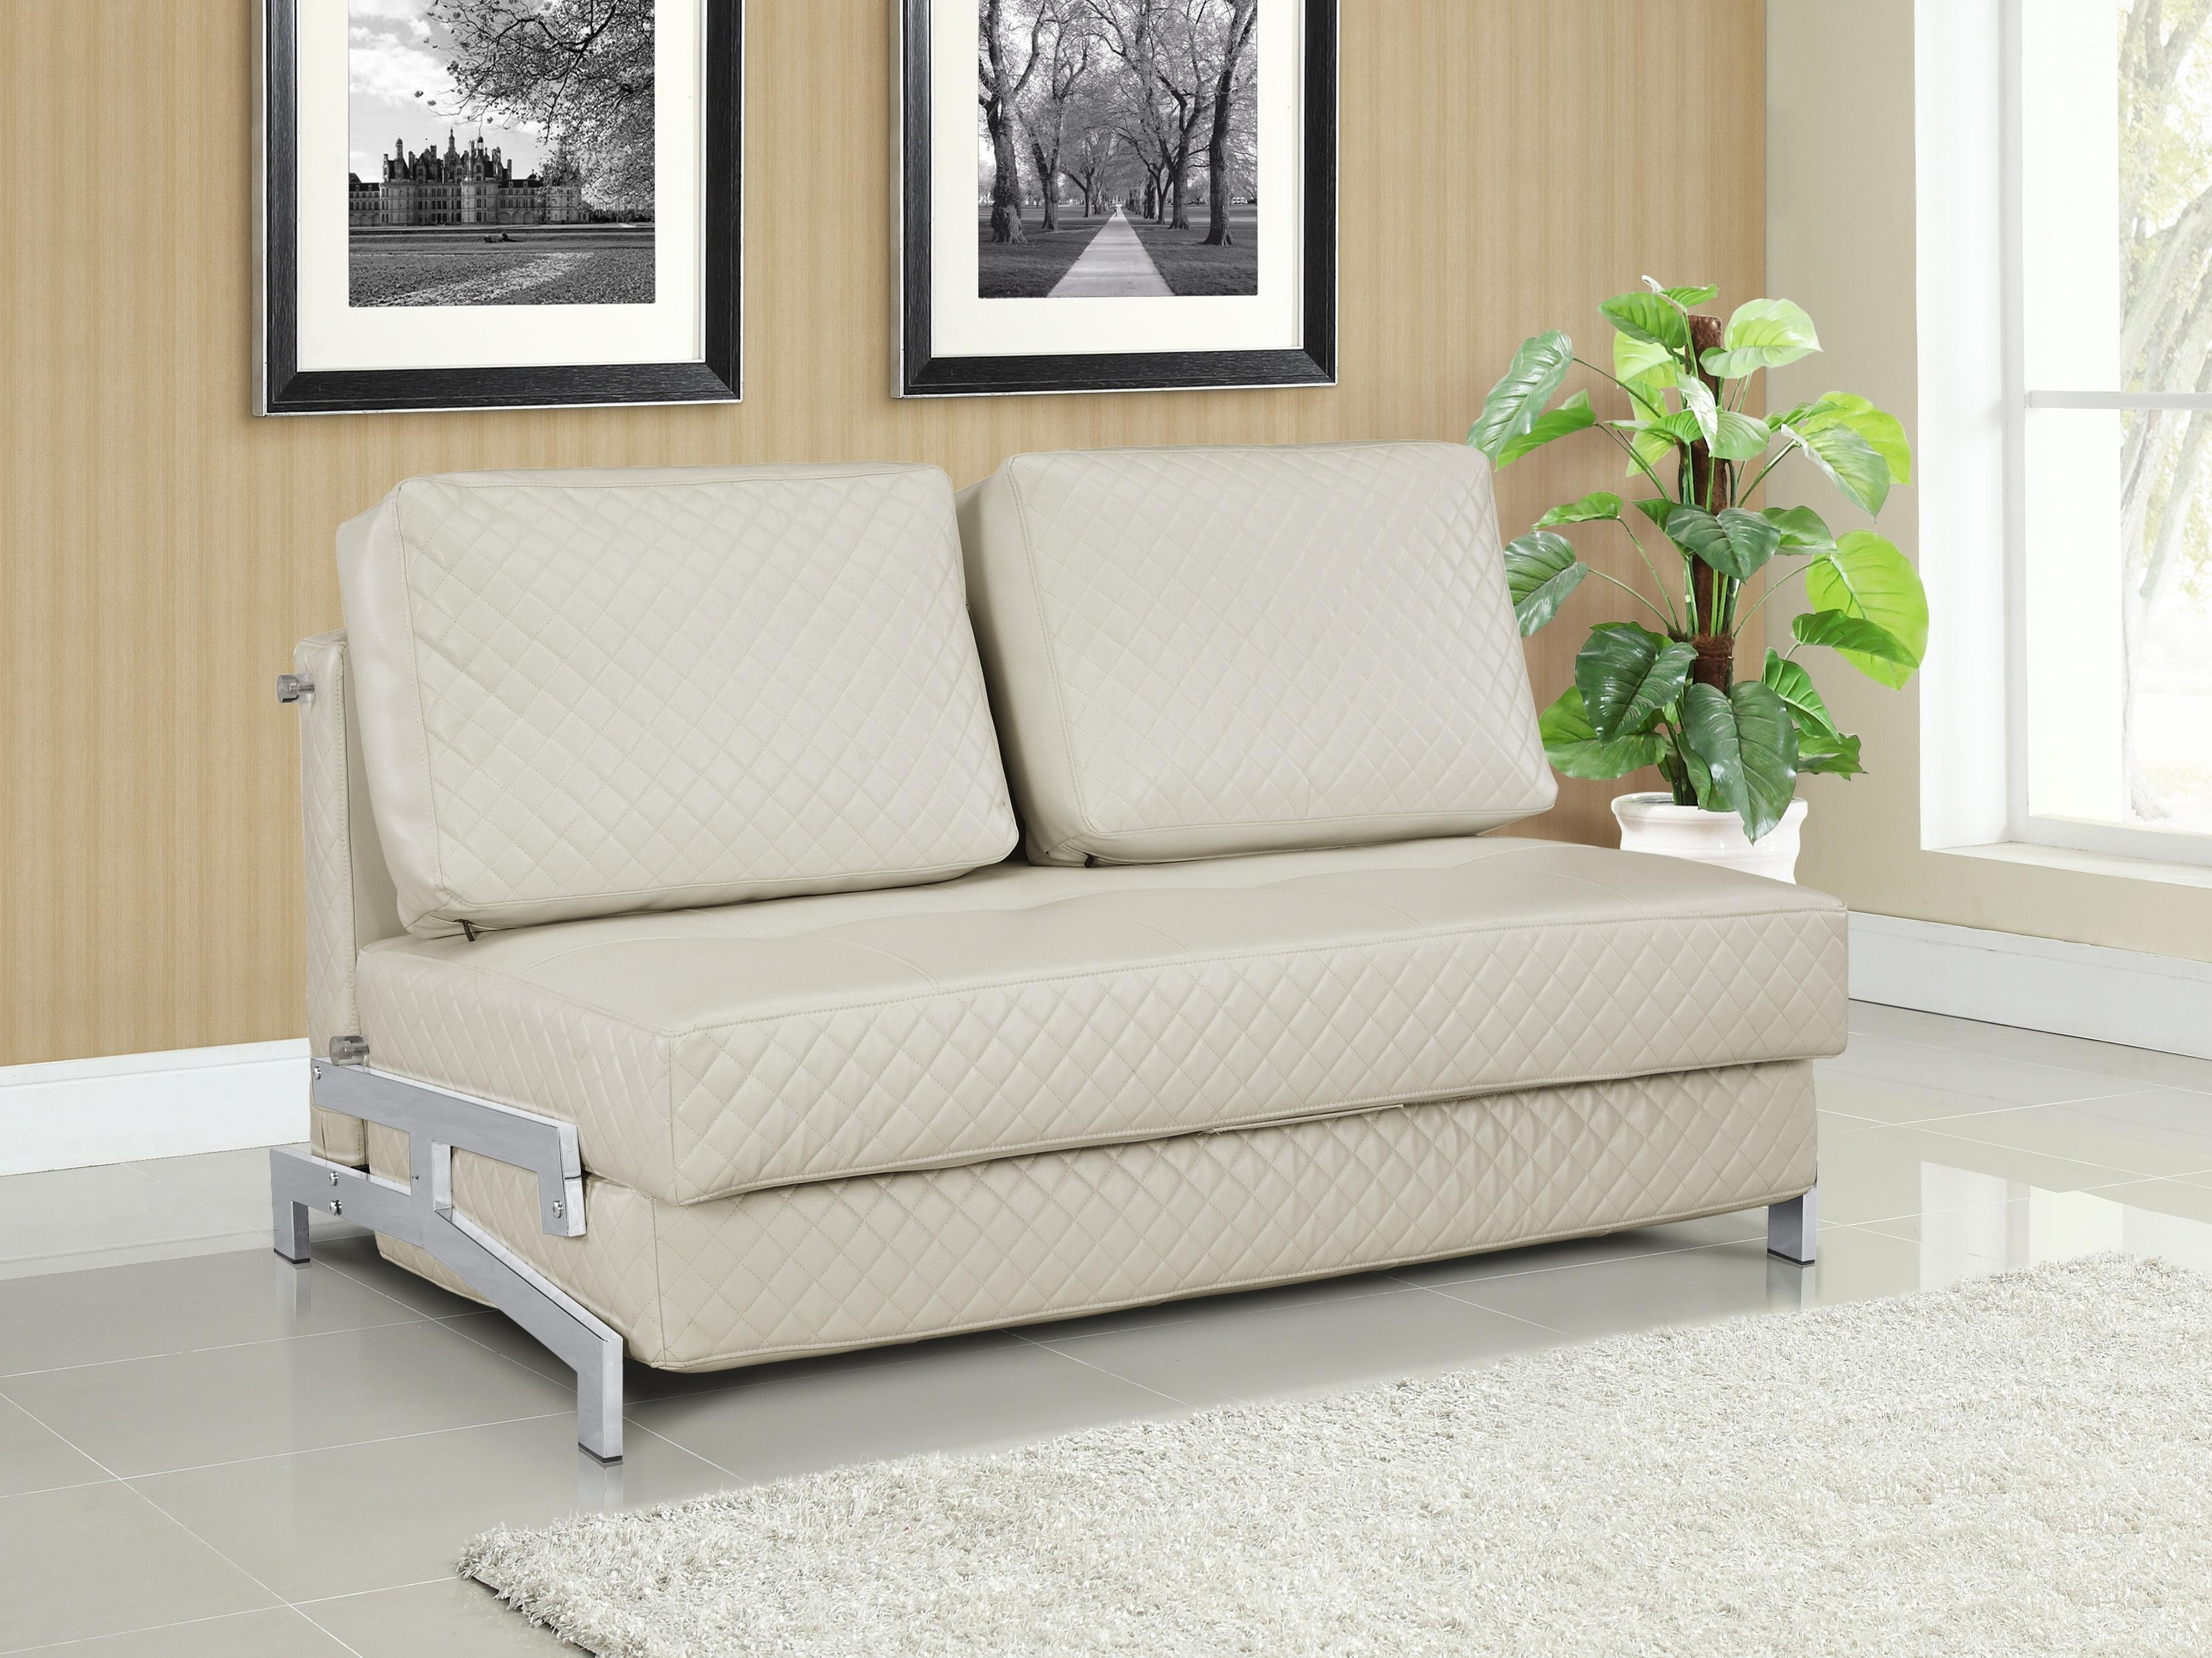 Furniture: Chic Euro Sofa Bed Costco | Redoubtable Lifestyle For Euro Sofas (Image 14 of 20)